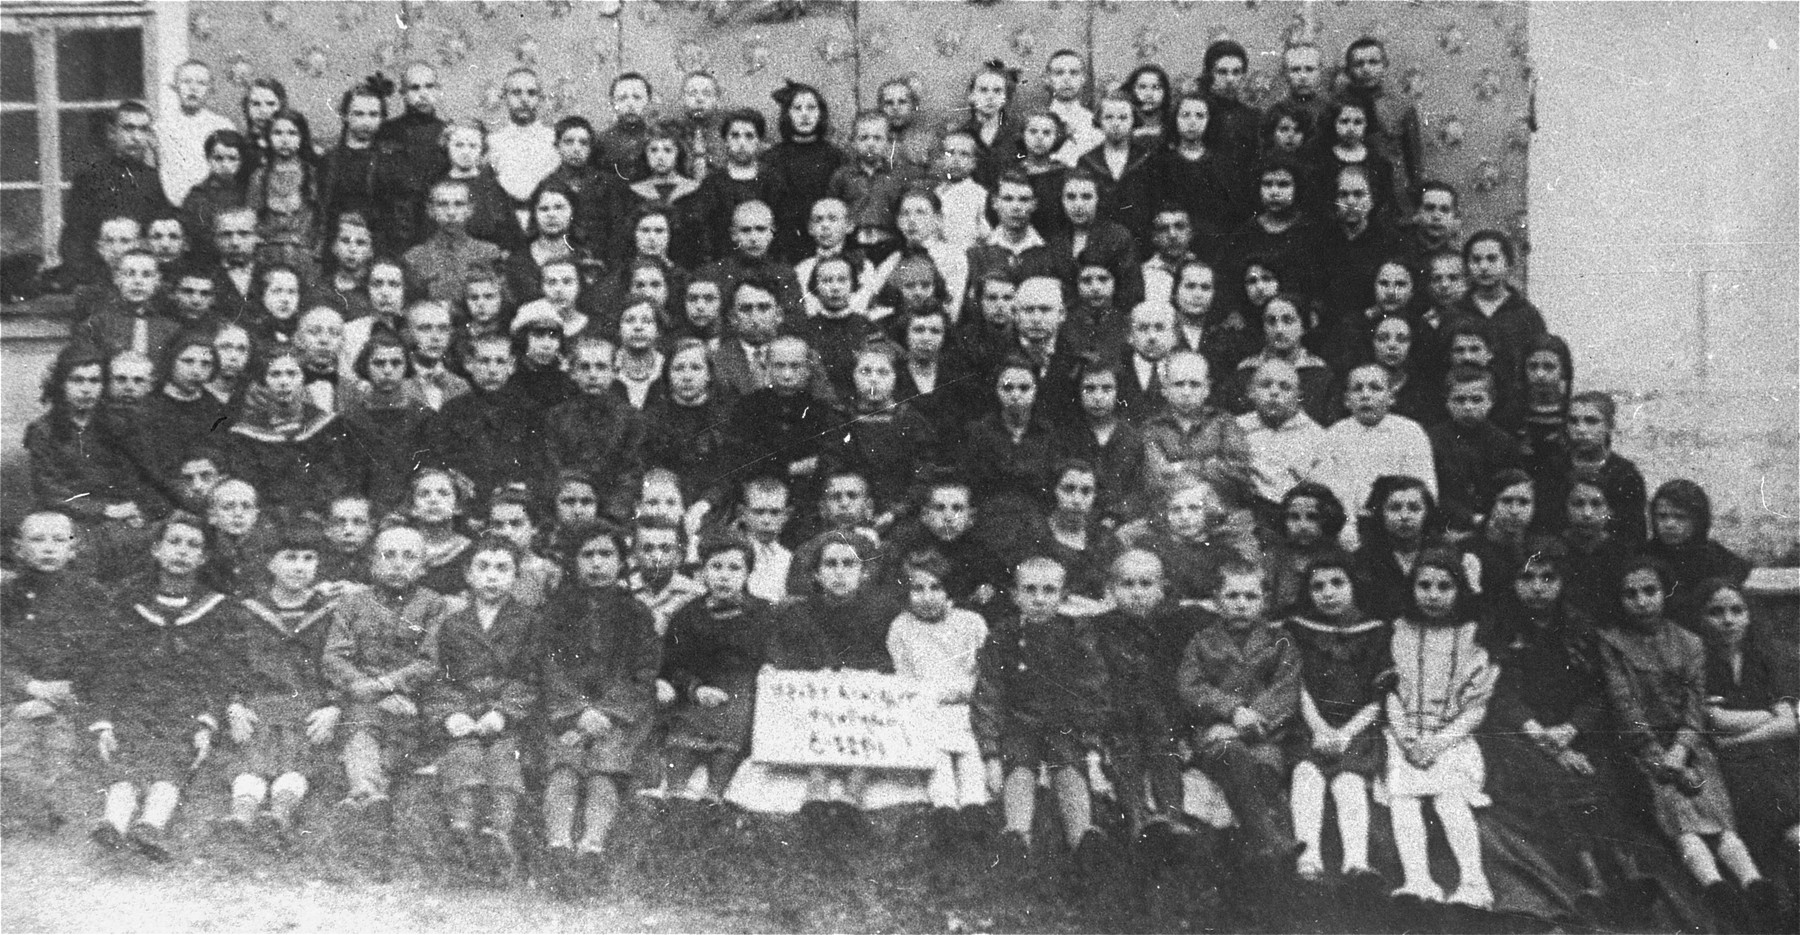 Photograph of a class in a school in Swienciany, Poland in 1928.